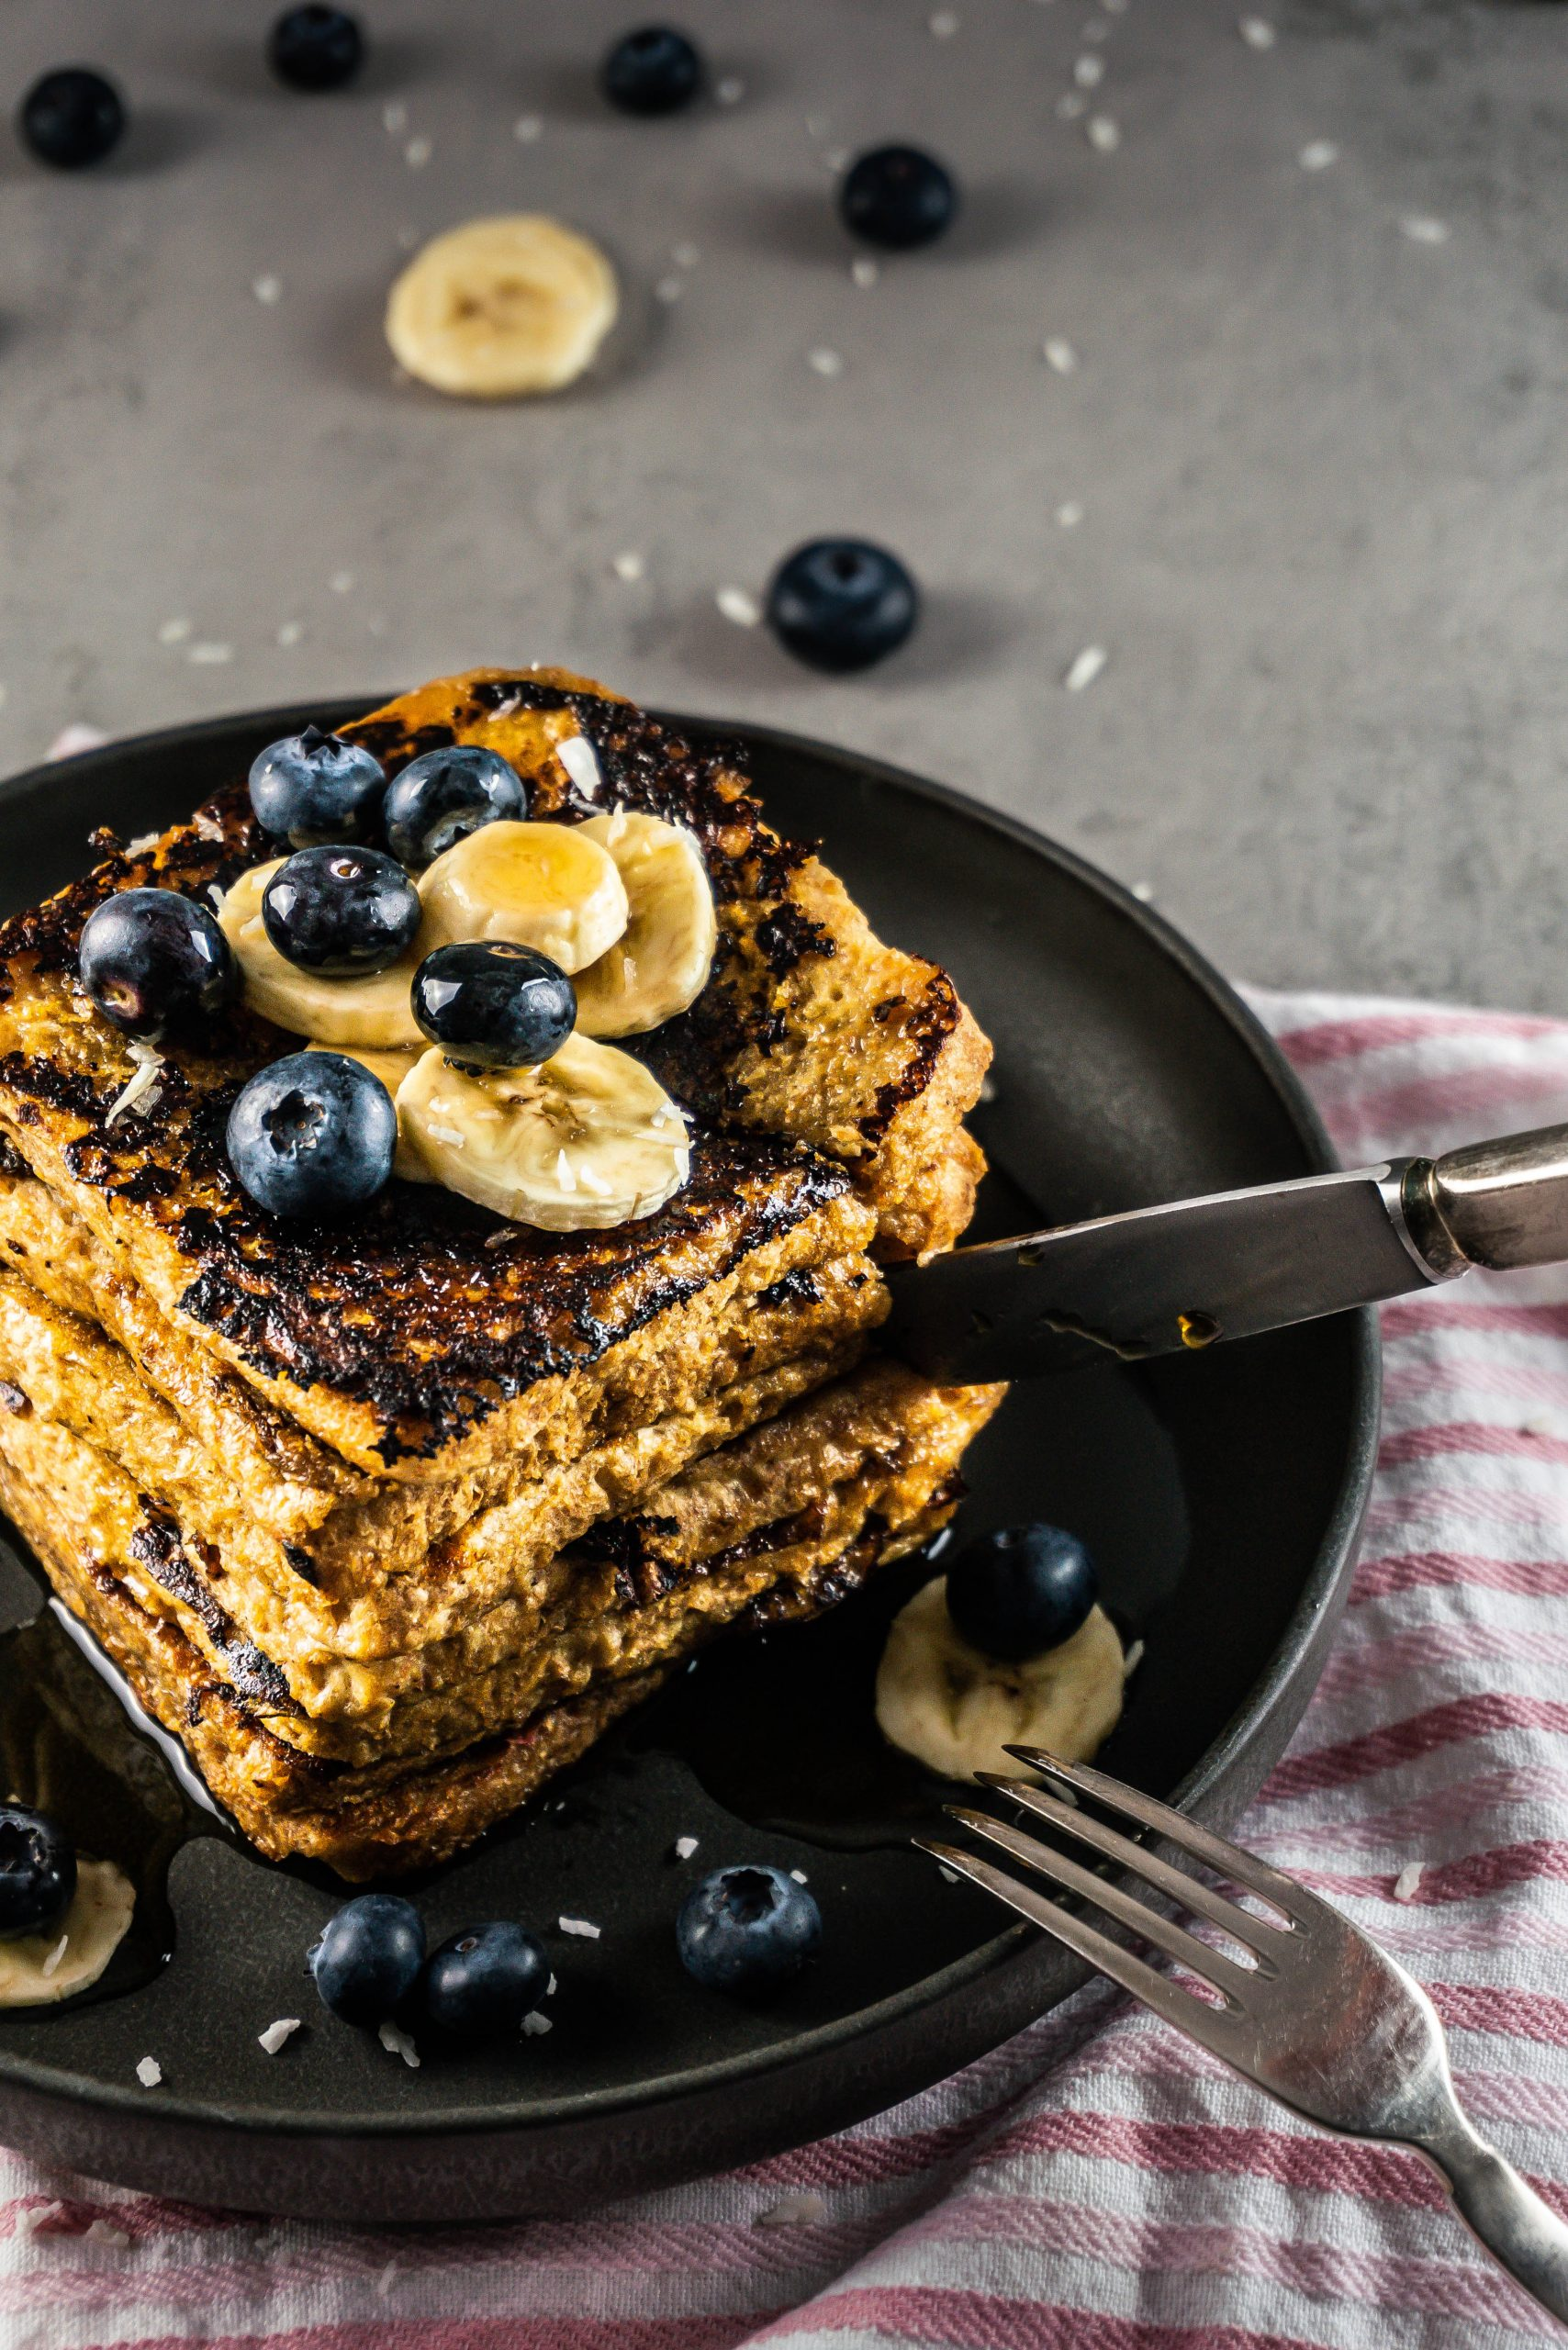 A stack of Cinnamon Banana French Toast covered in maple syrup with a knife cutting into it